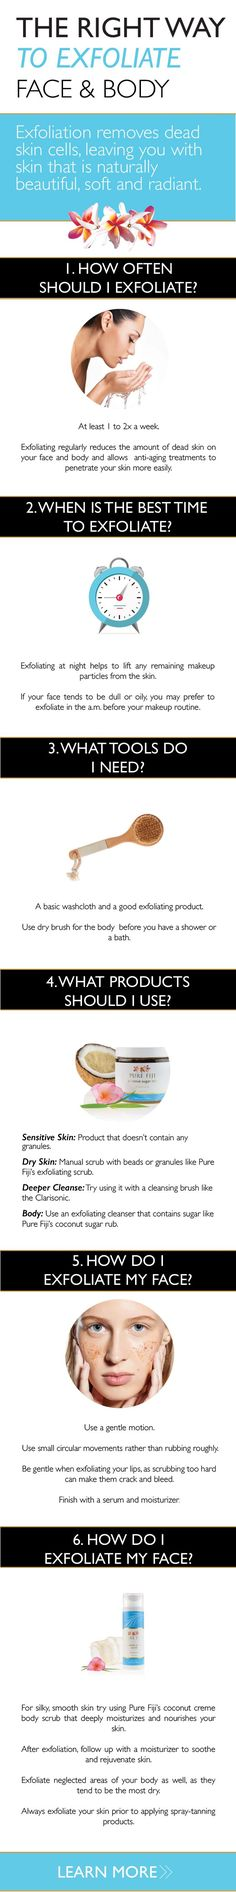 Have you ever heard the expression out with the old, in with the new? We might think of this when cleaning out our closets but the same also applies to our skin. In this case, exfoliating our skin is akin to purging our closets. However, exfoliation isn�t as simple as it may seem. CLICK here to learn more tips and tricks for achieving radiant skin http://www.purefiji.com/blog/exfoliate-the-right-way/   Coconut Oil for Natural Beauty   Natural Skin Care Products